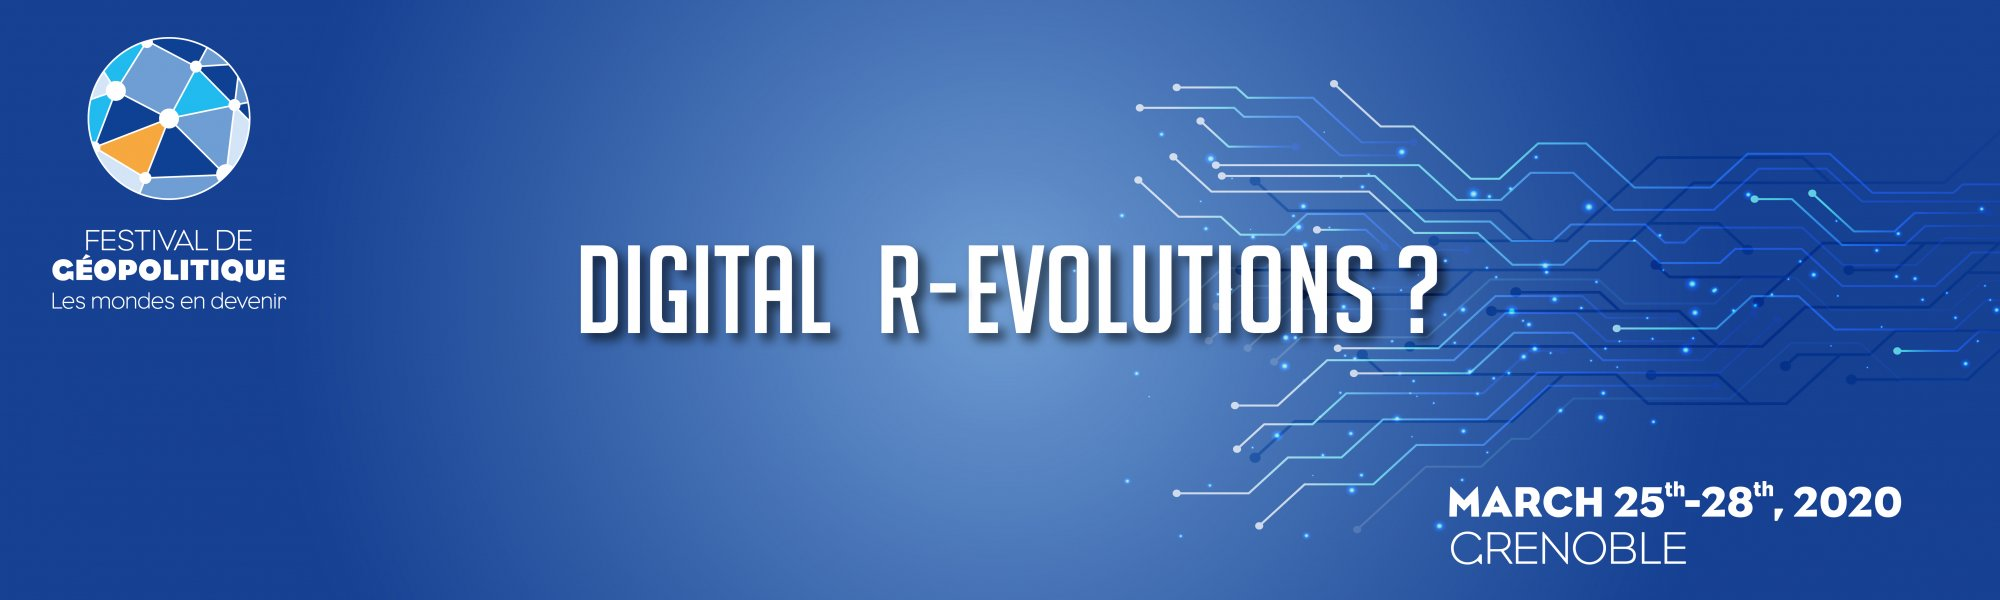 2020 Theme_Digital r-evolutions ?